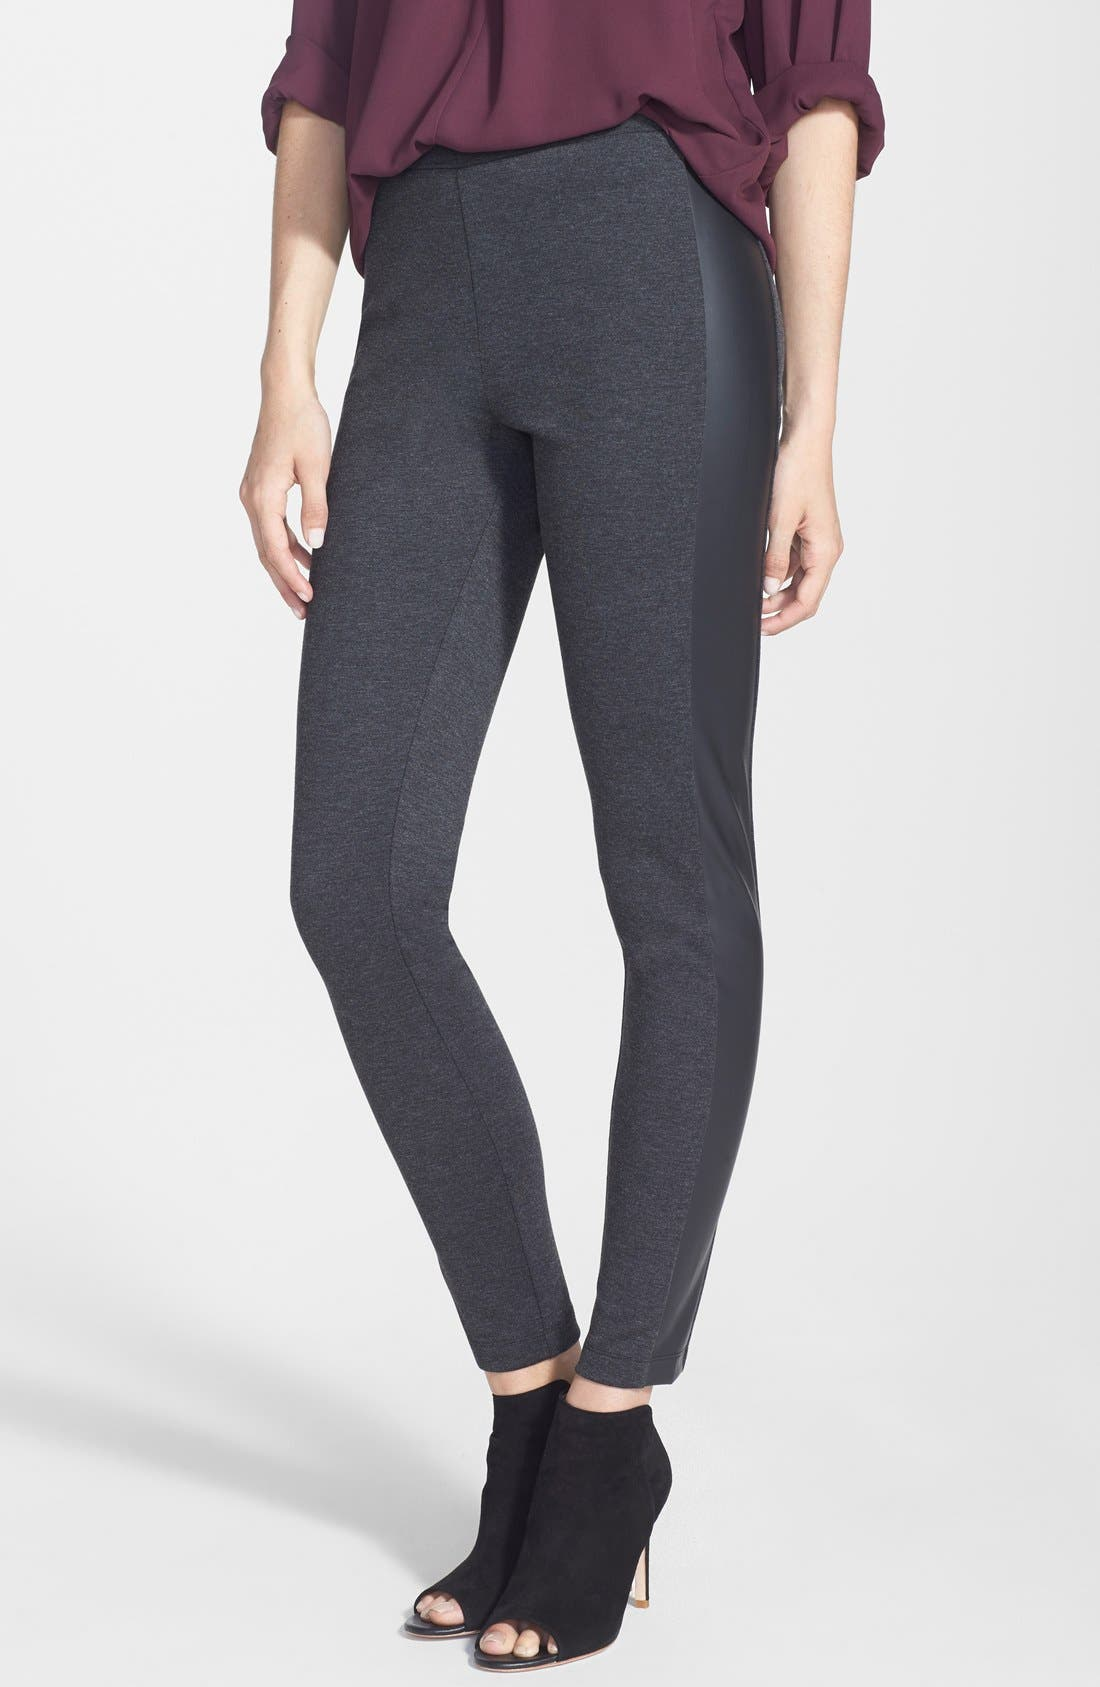 Main Image - Two by Vince Camuto Faux Leather Trim Leggings (Petite)